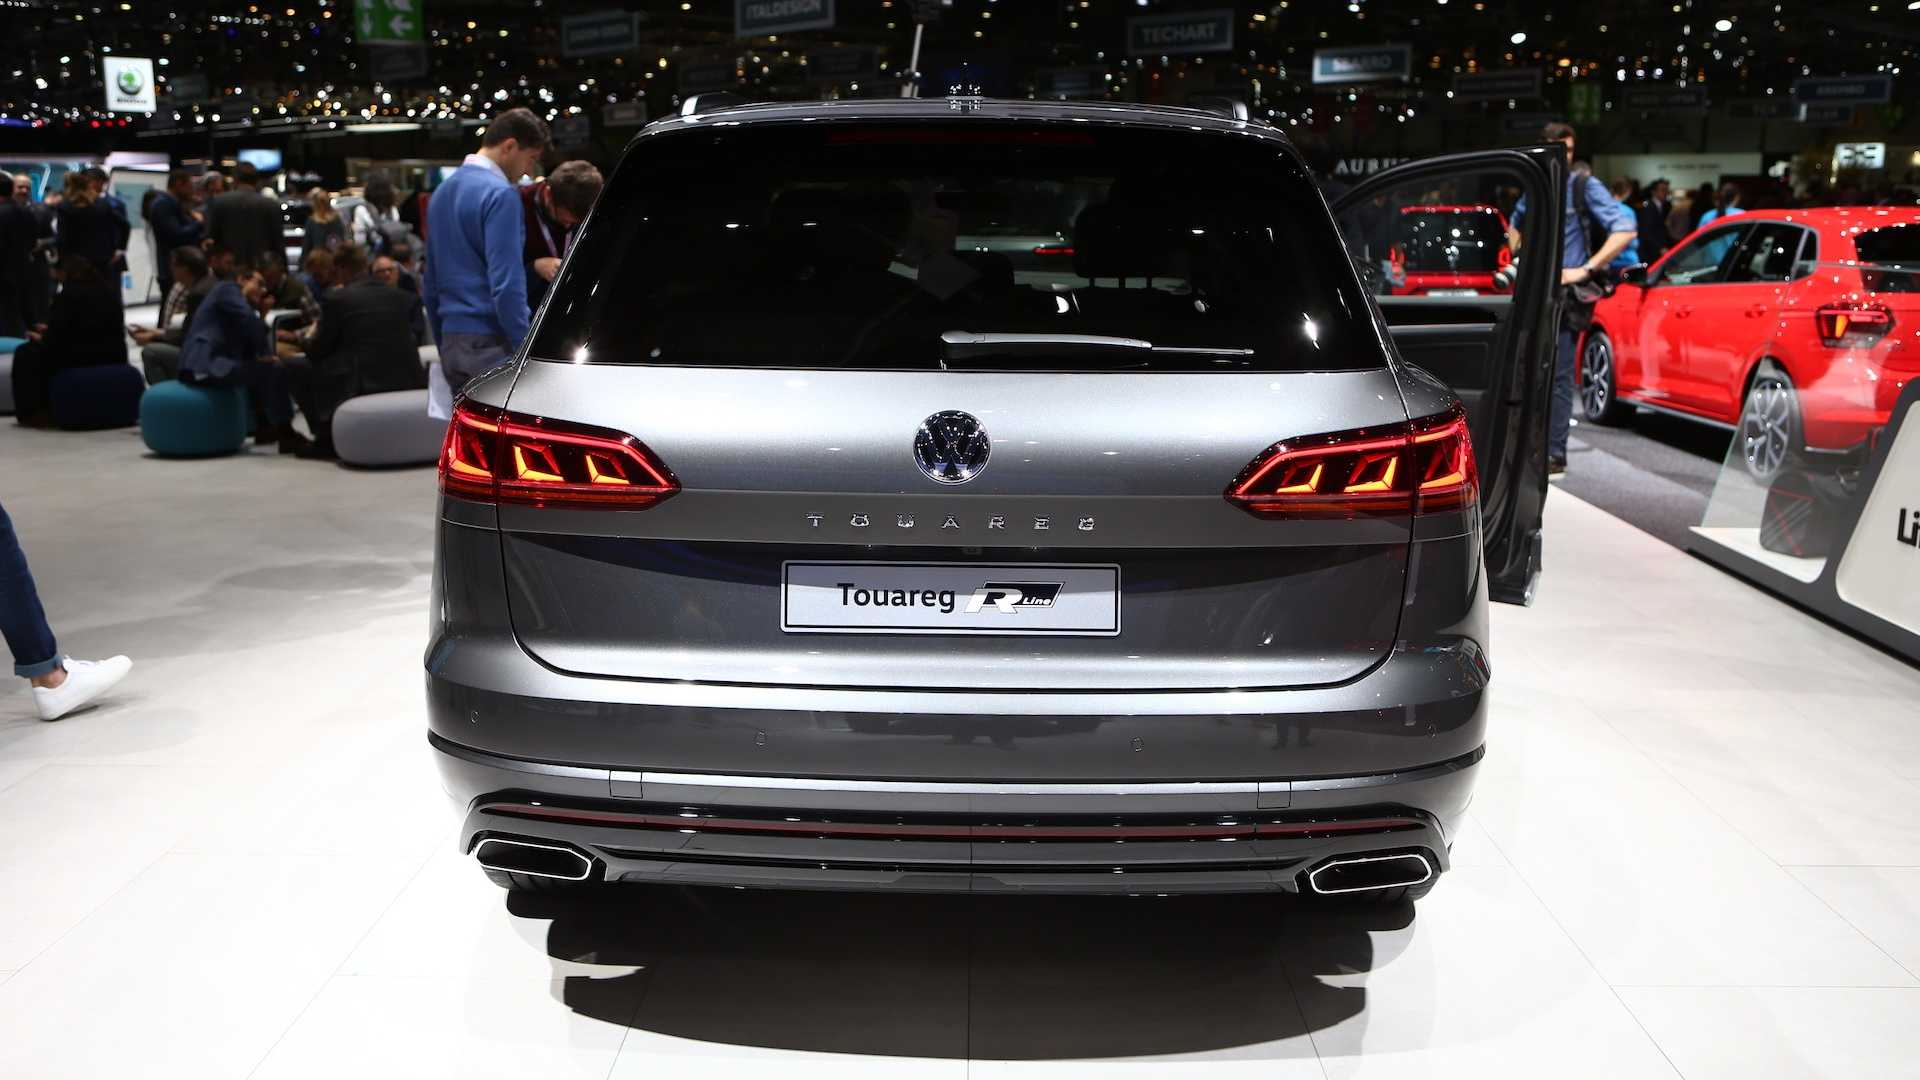 touareg v8 tdi arrives in geneva as most powerful vw on sale touareg v8 tdi arrives in geneva as